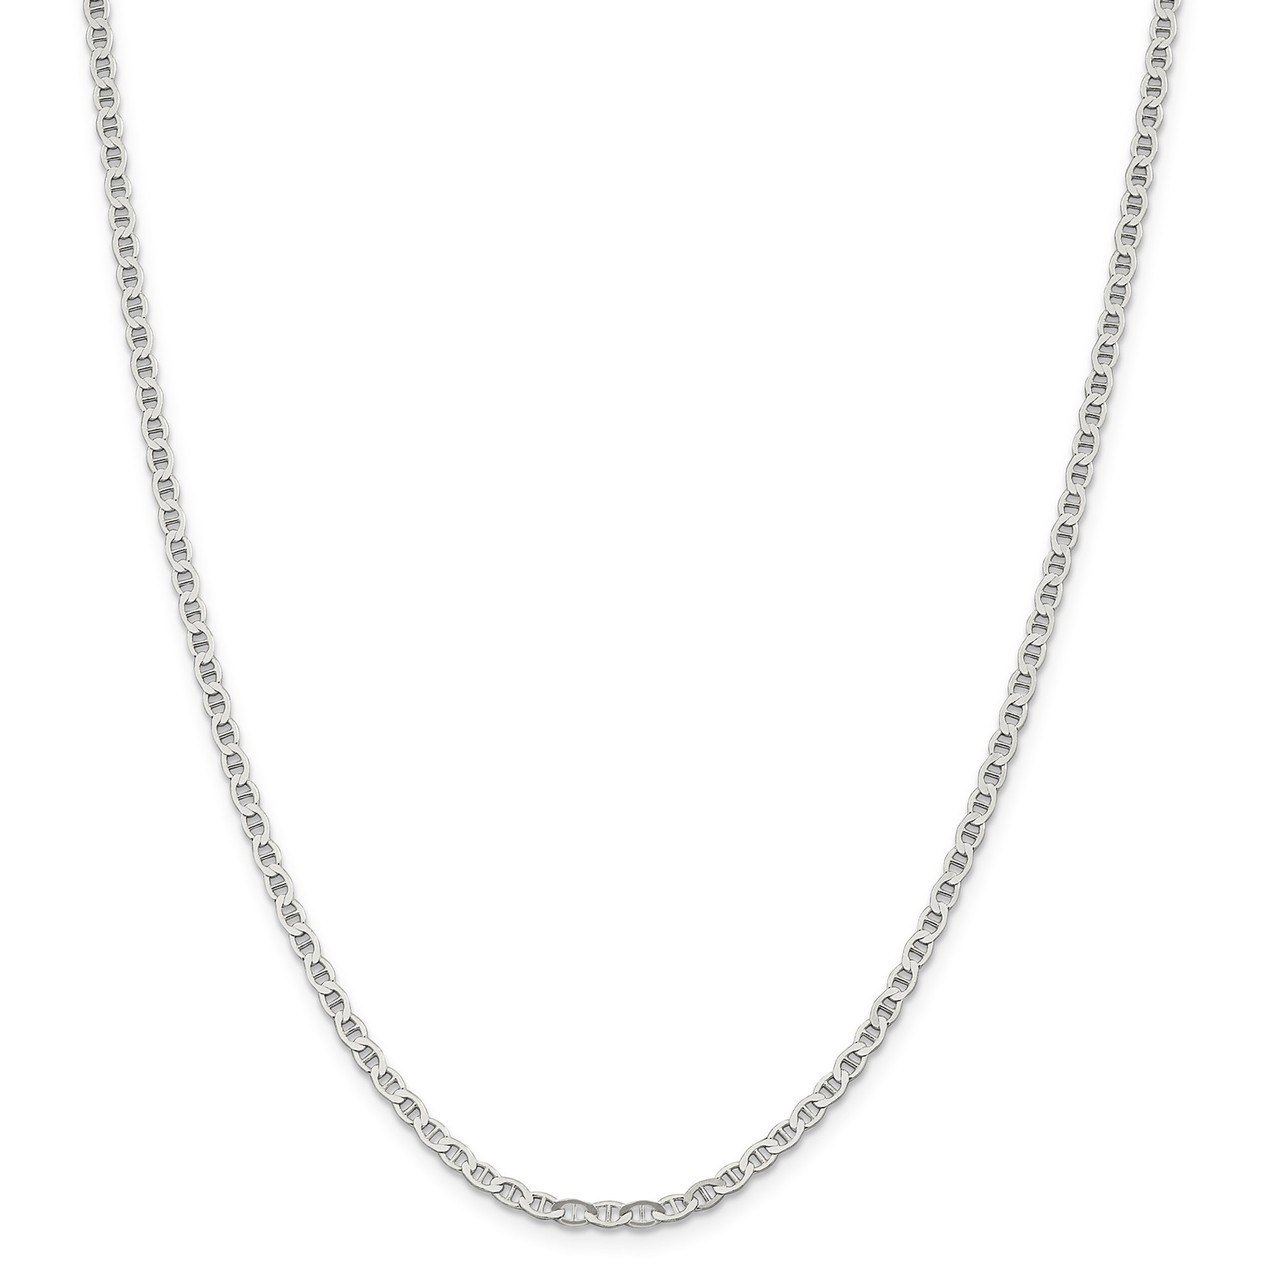 Lex & Lu Sterling Silver 3.1mm Flat Anchor Chain Anklet, Bracelet or Necklace-Prime